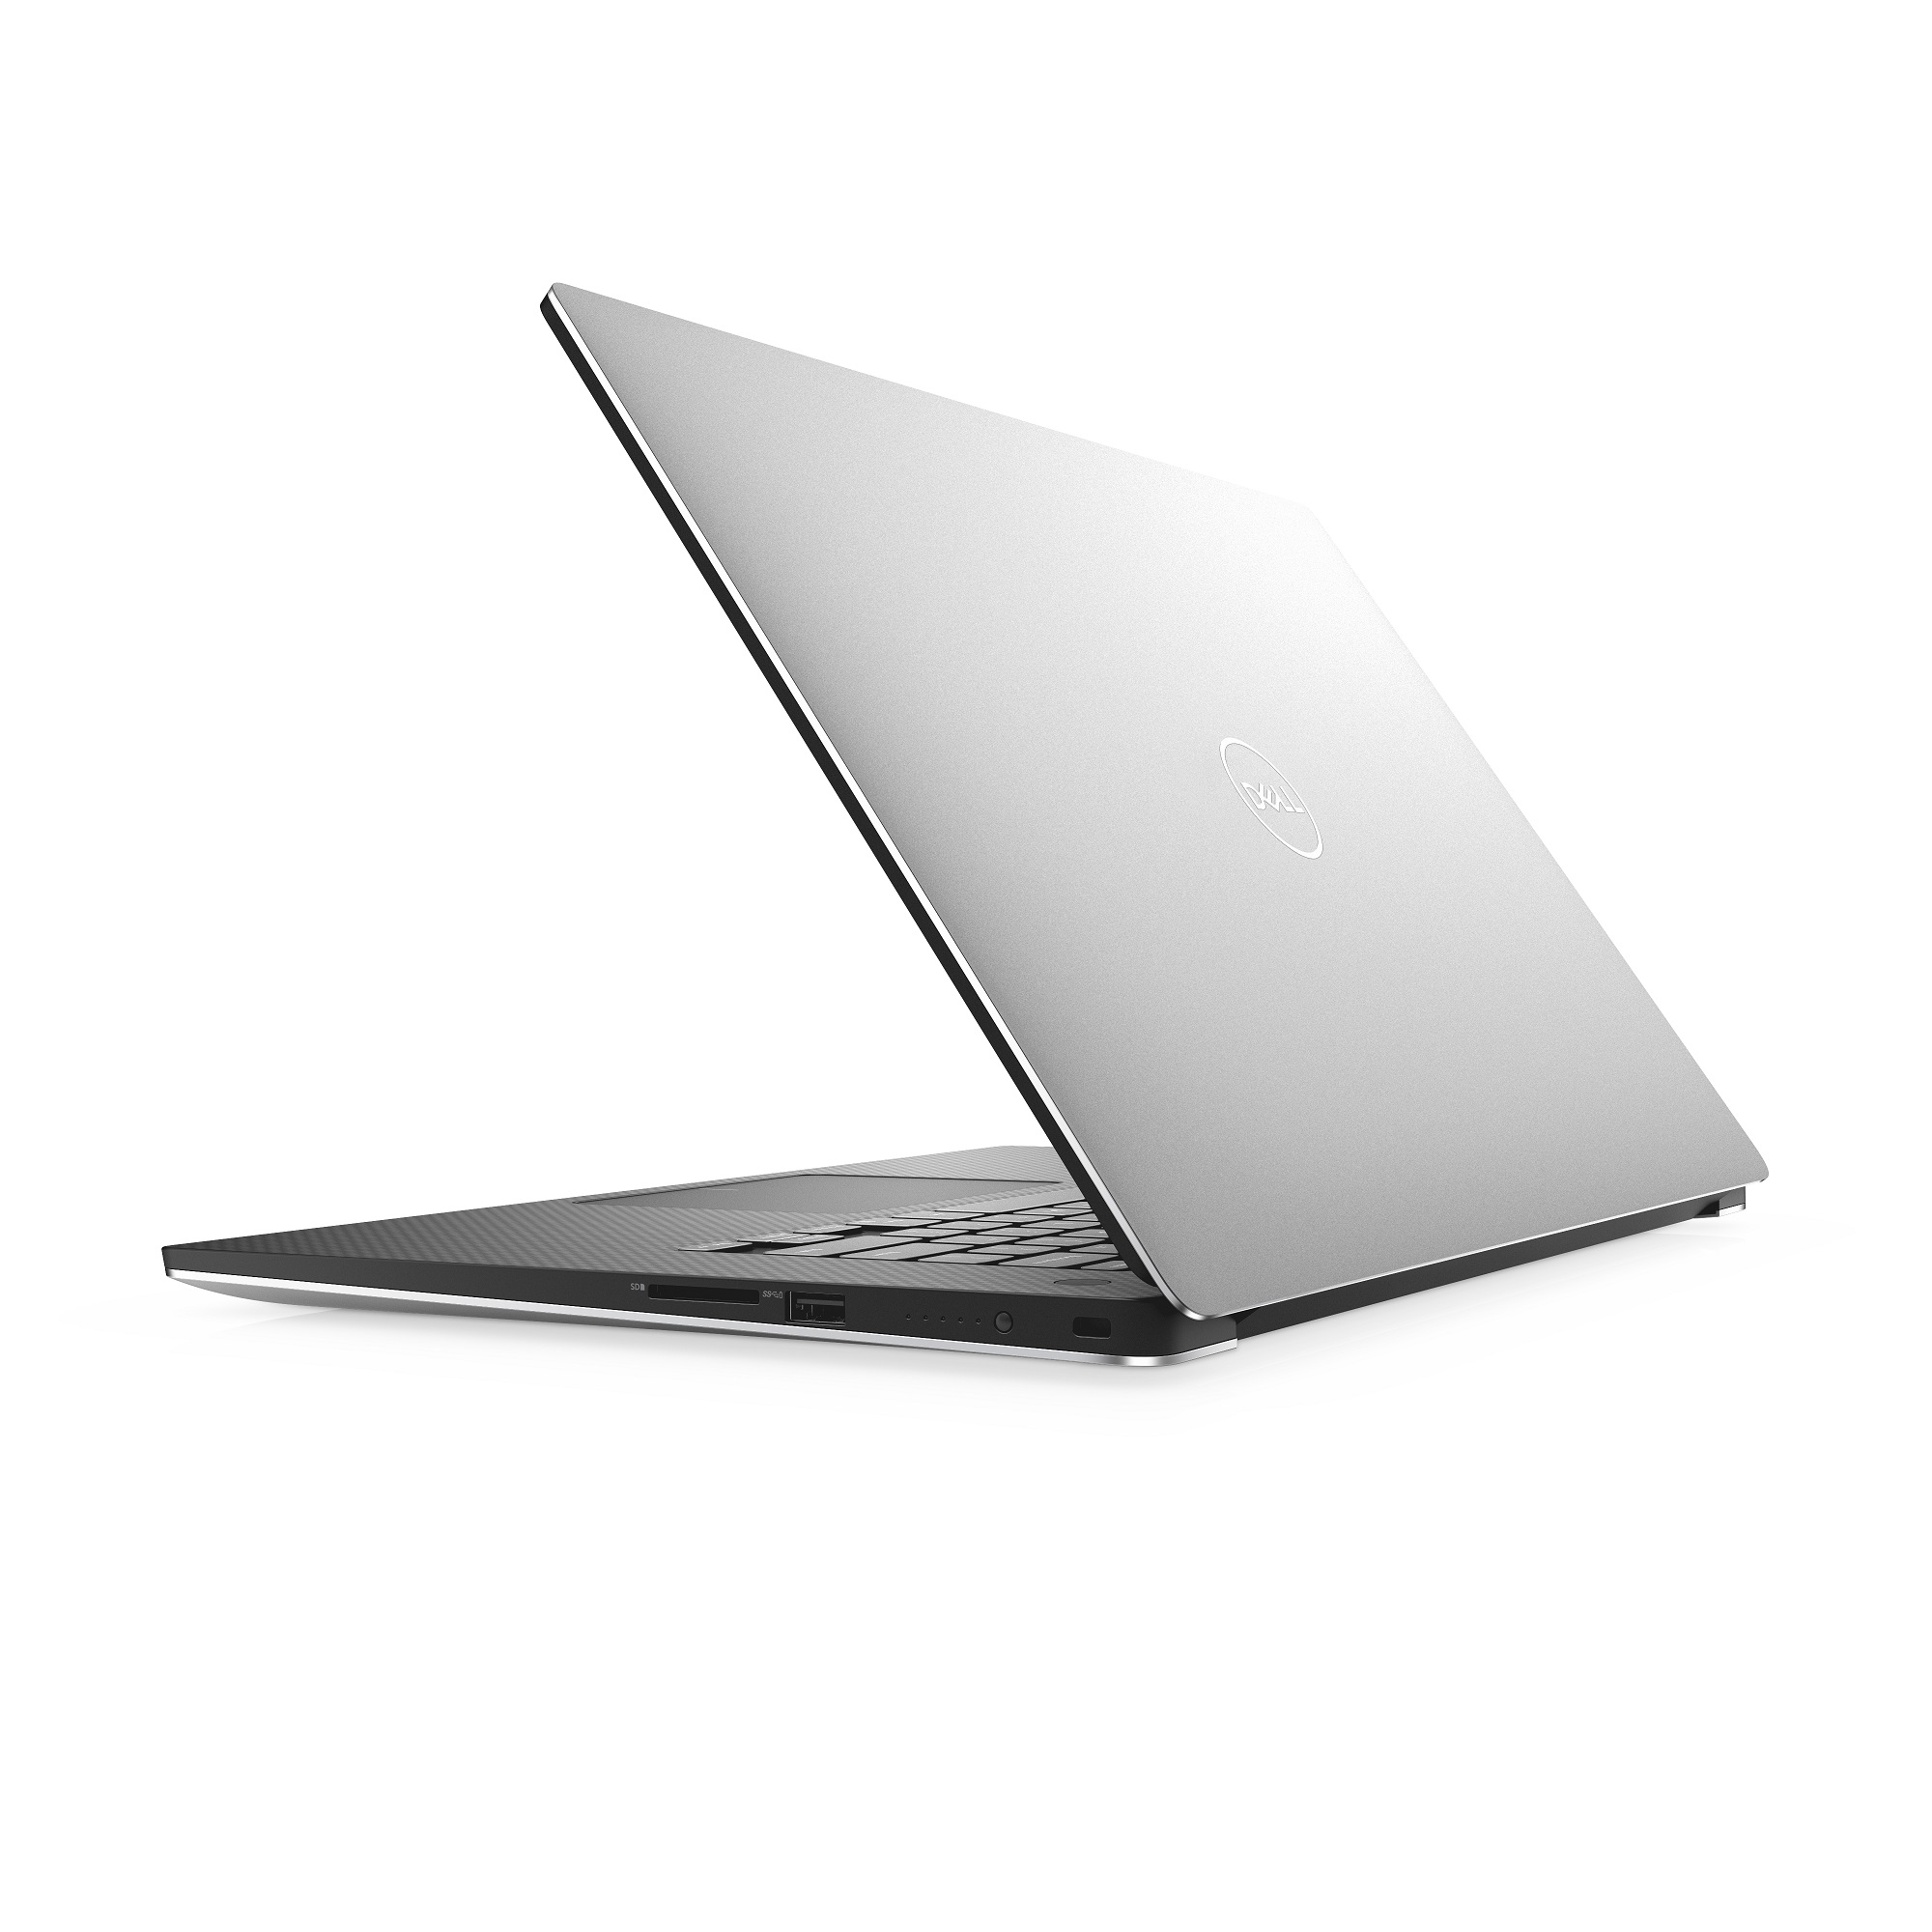 Laptop DELL XPS 15 7590 15,6'' FHD HS LED i7-9750H 16GB 512GB SSD GTX1650 BK FPR Win10P 3YNBD